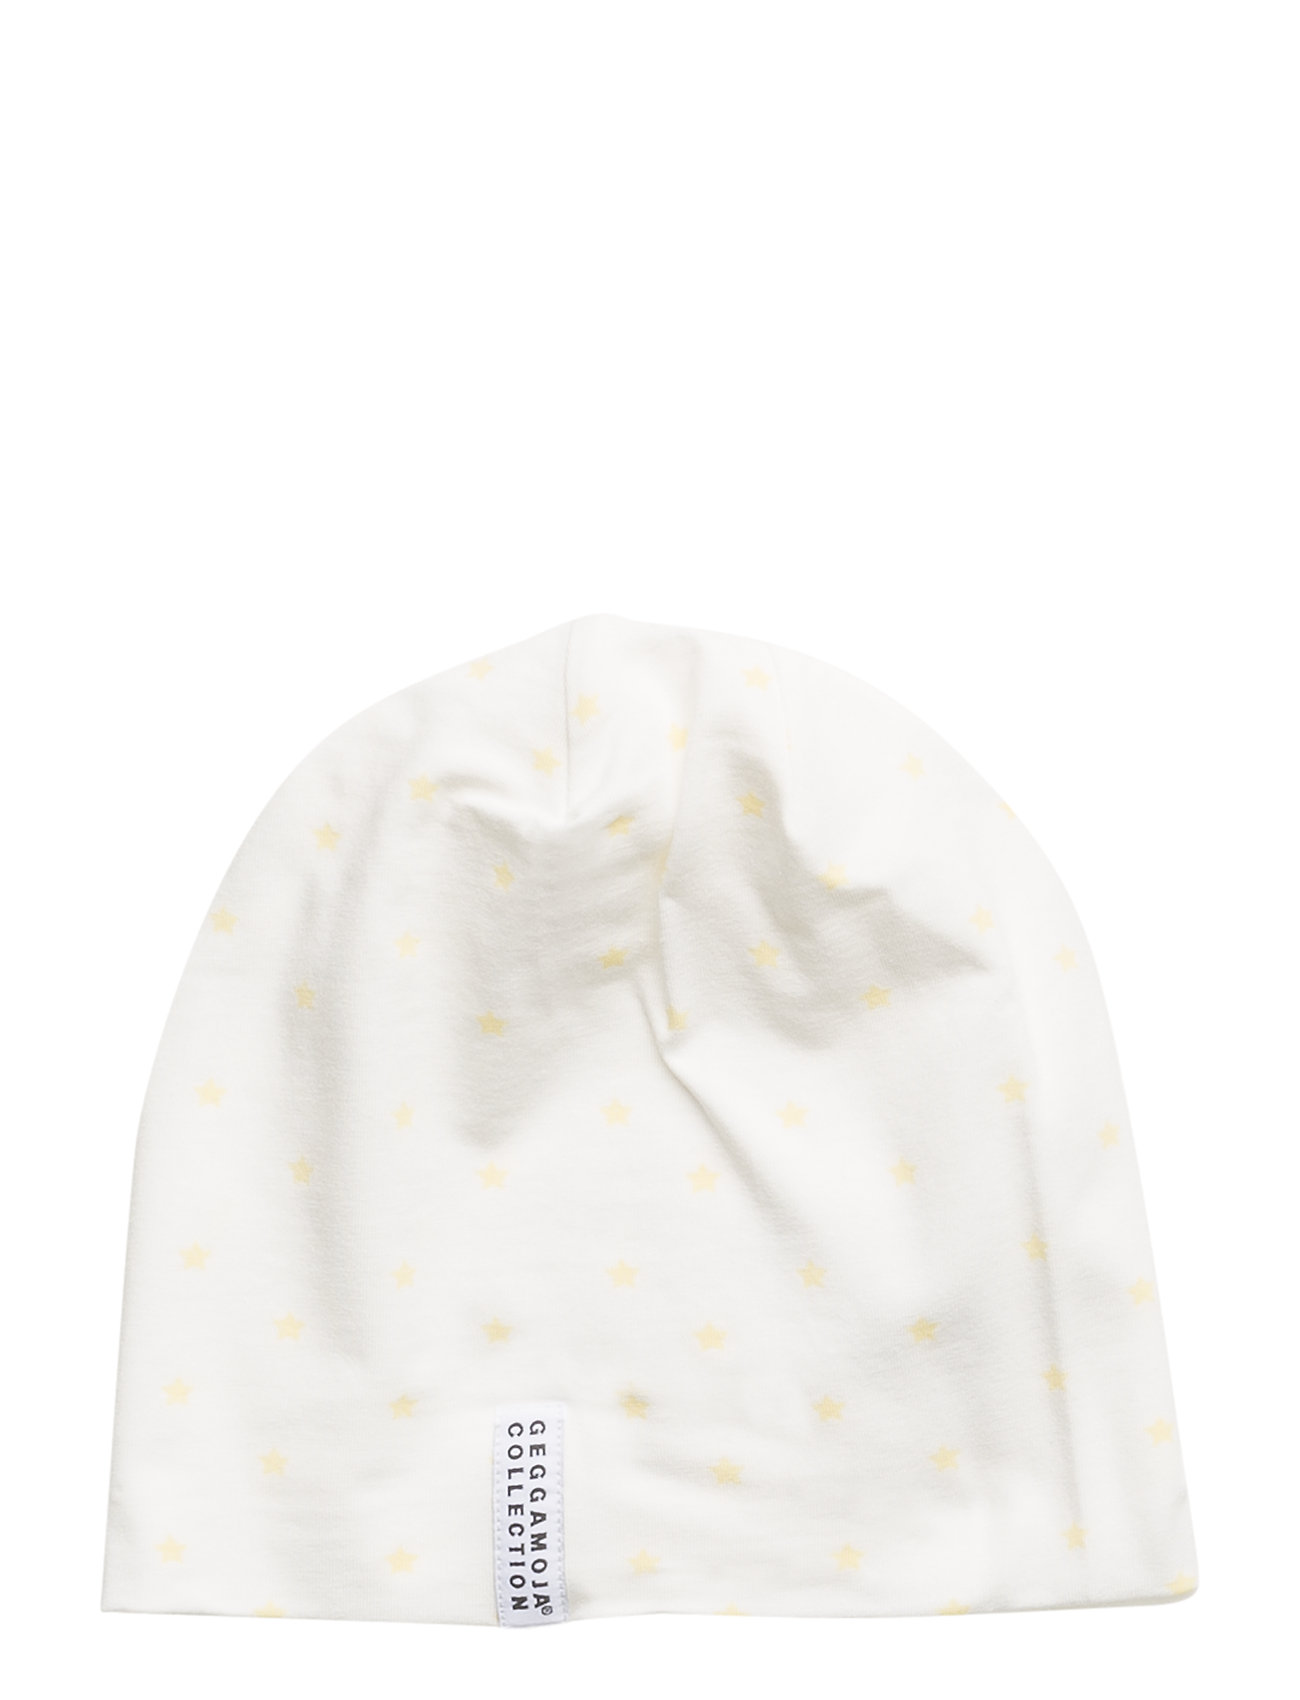 Geggamoja Bamboo cap Yellow star - WHITE